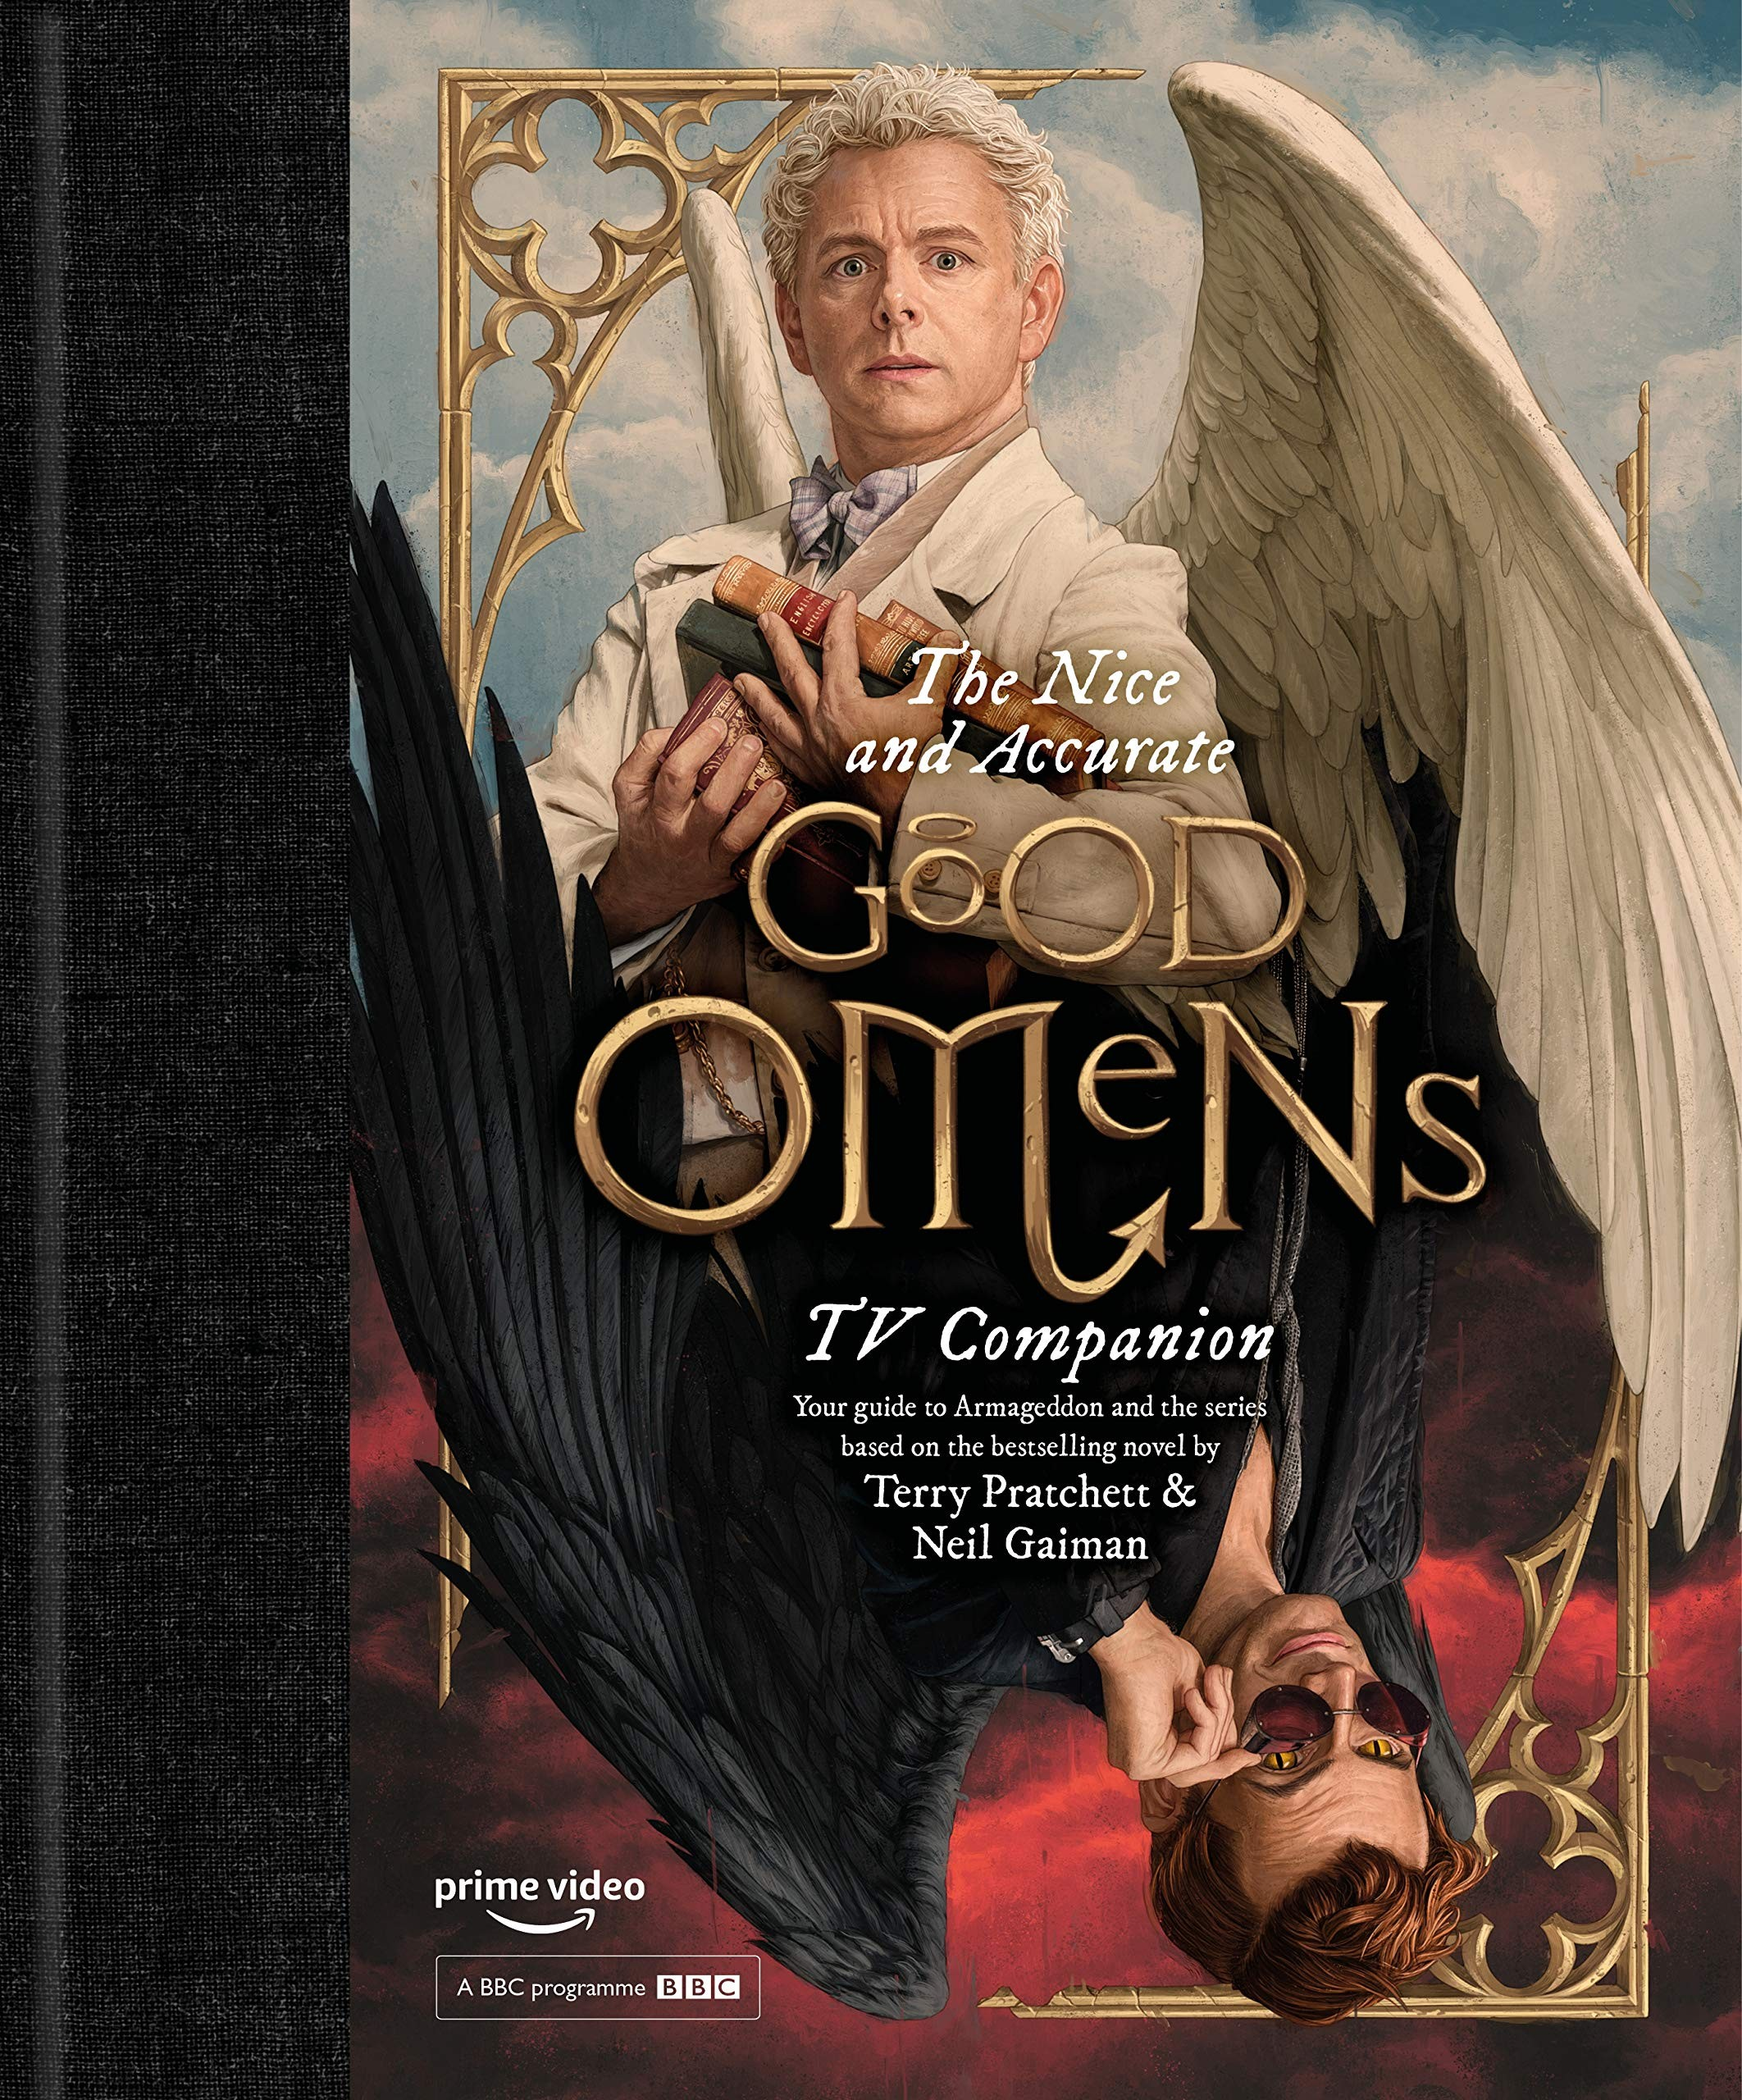 Good Omens TV companion